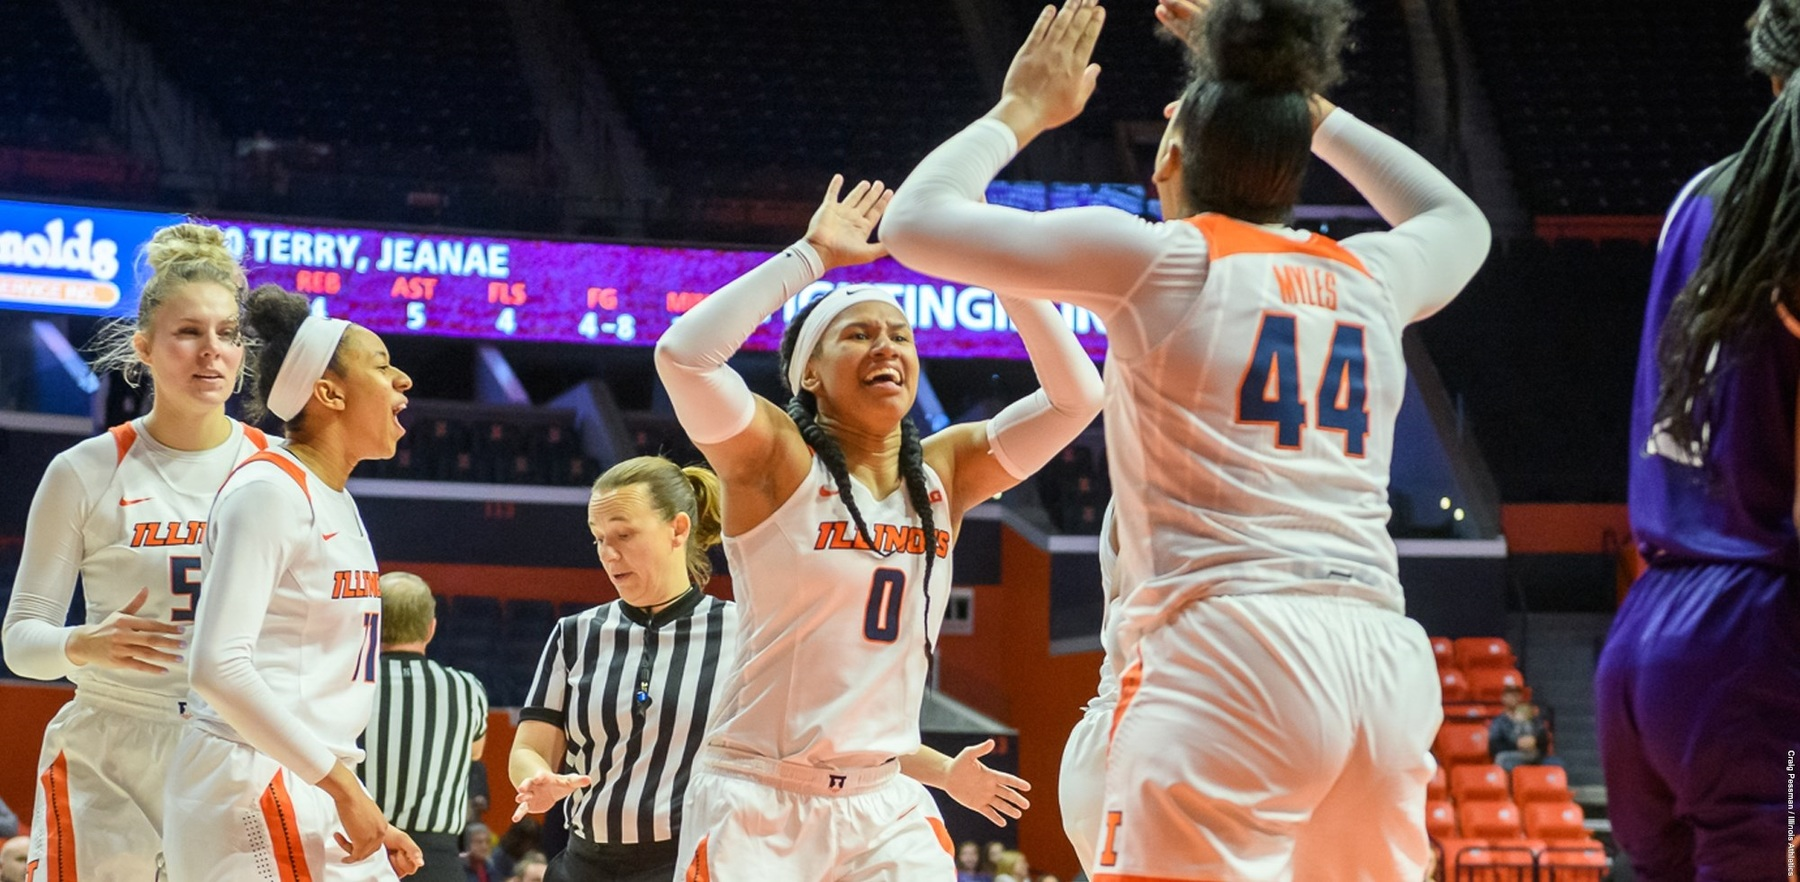 Illini players high five on the court